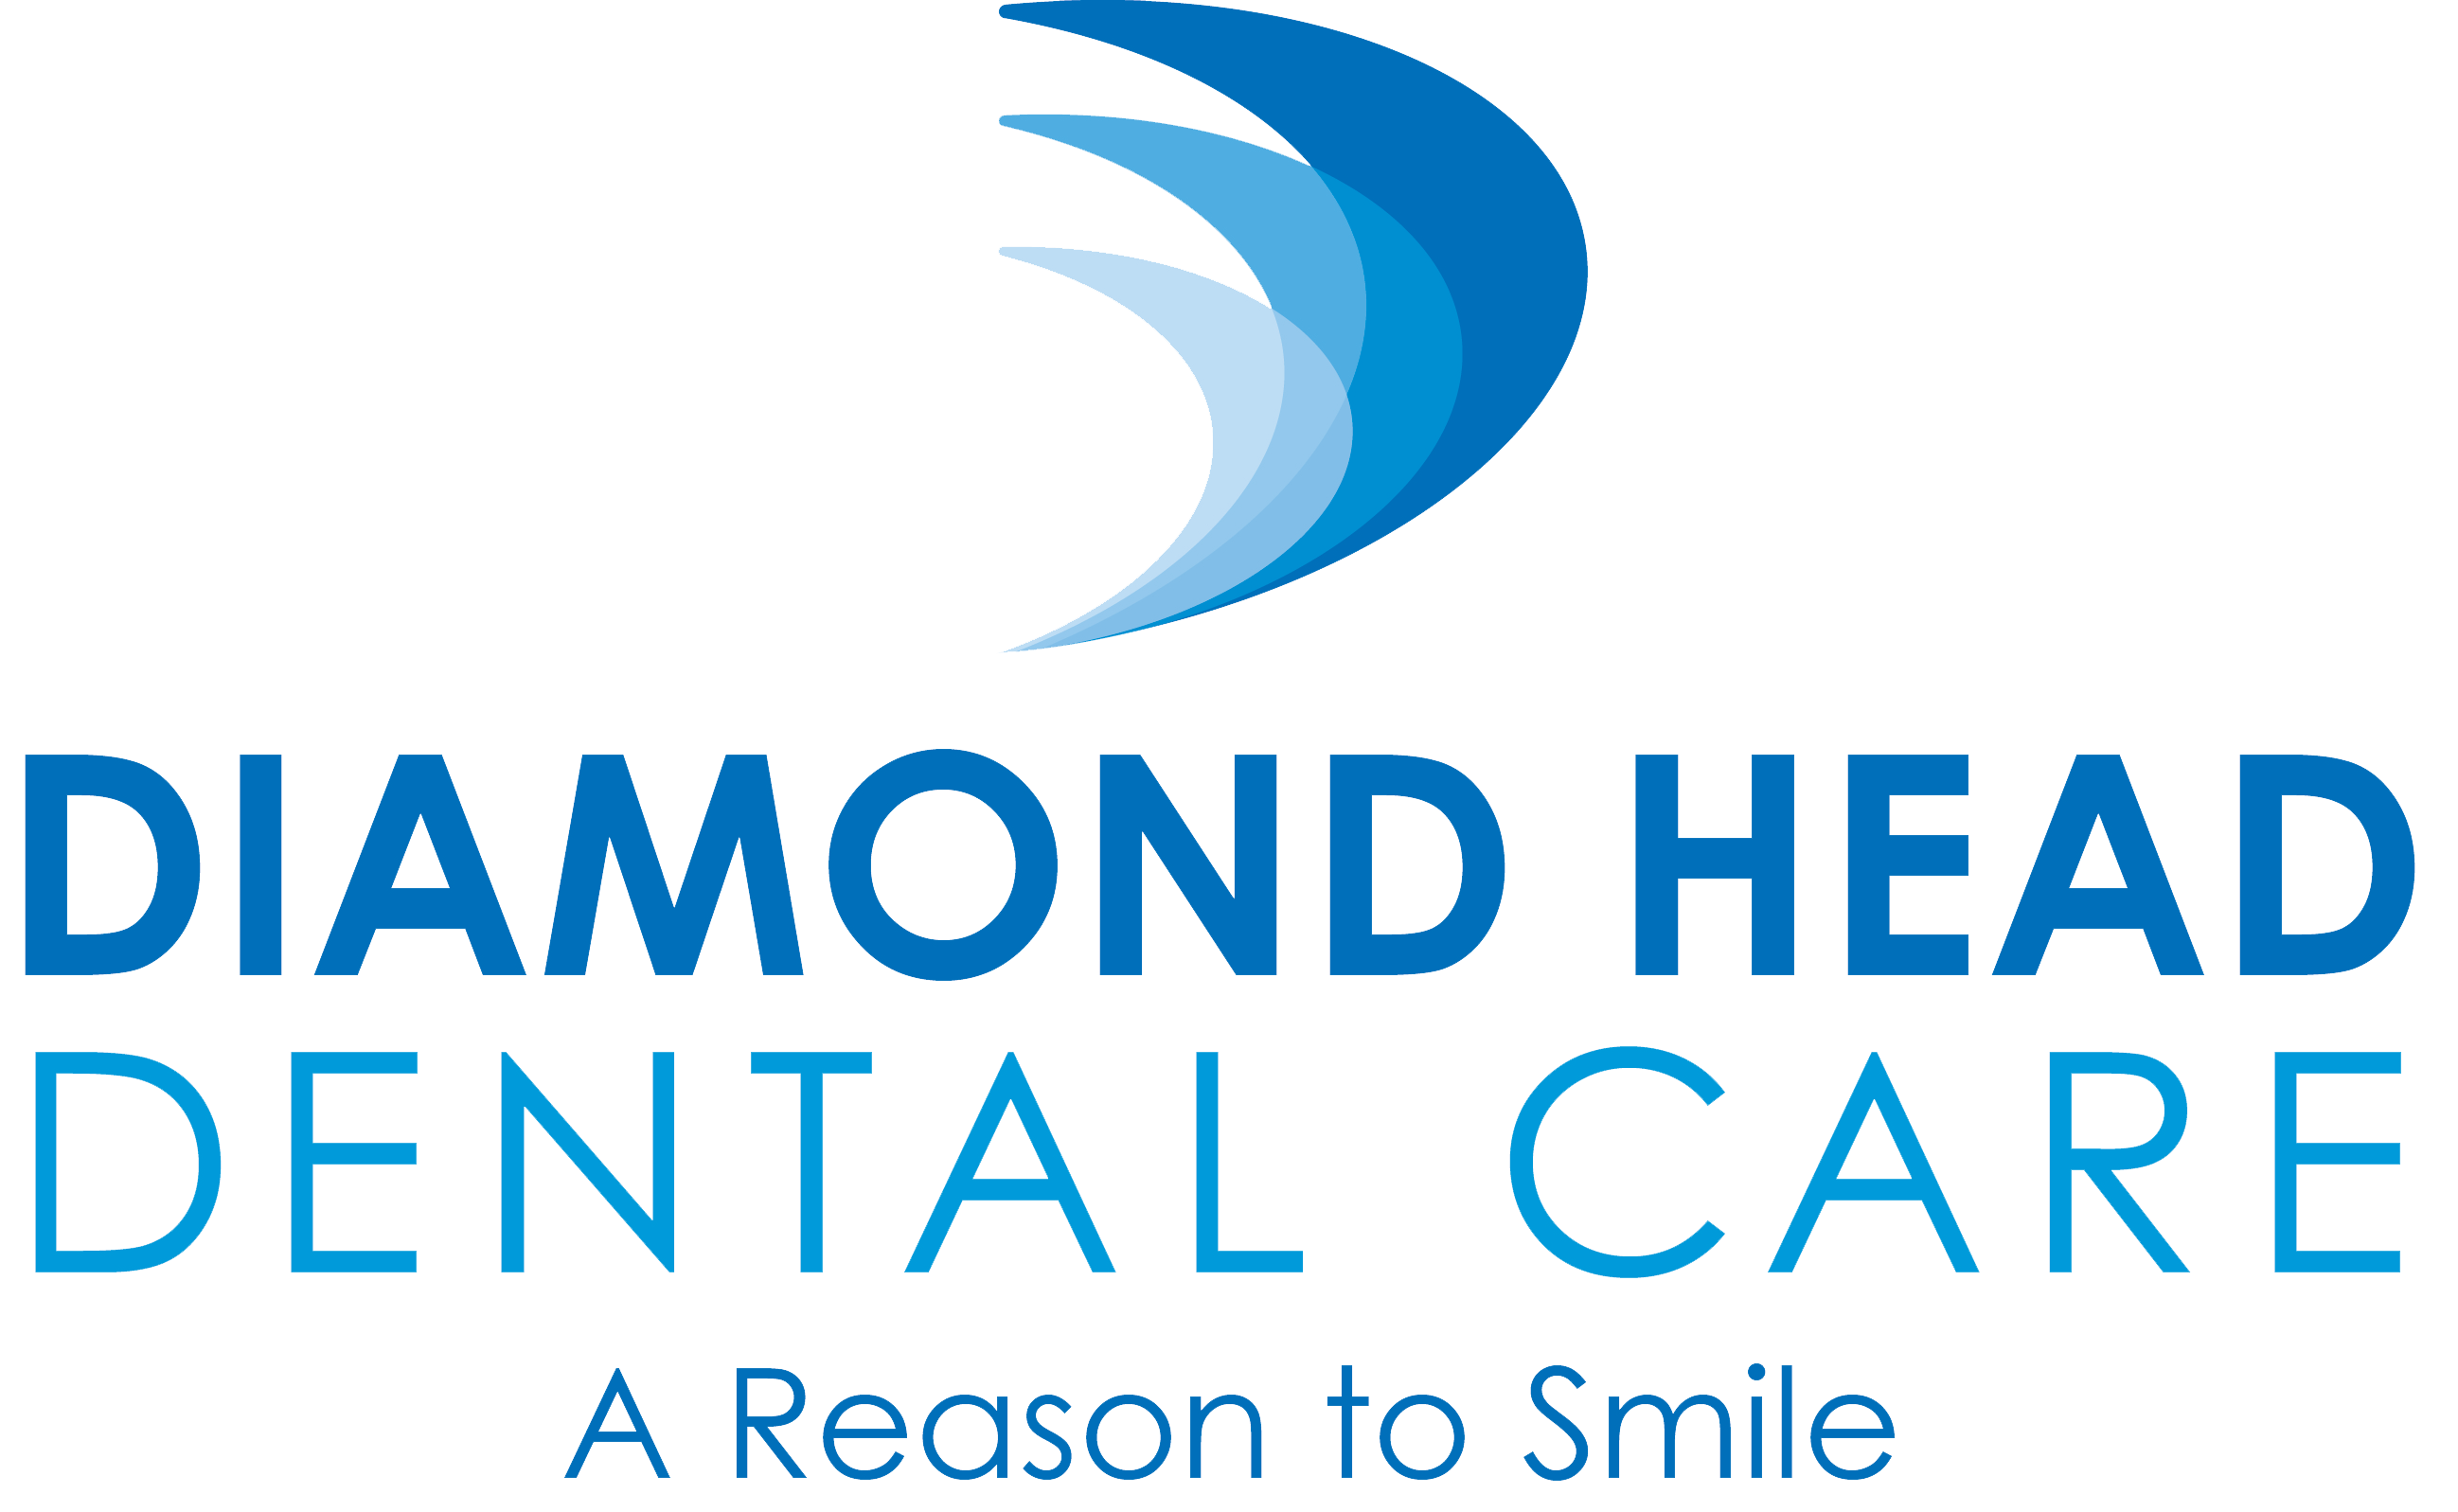 Visit Diamond Head Dental Care